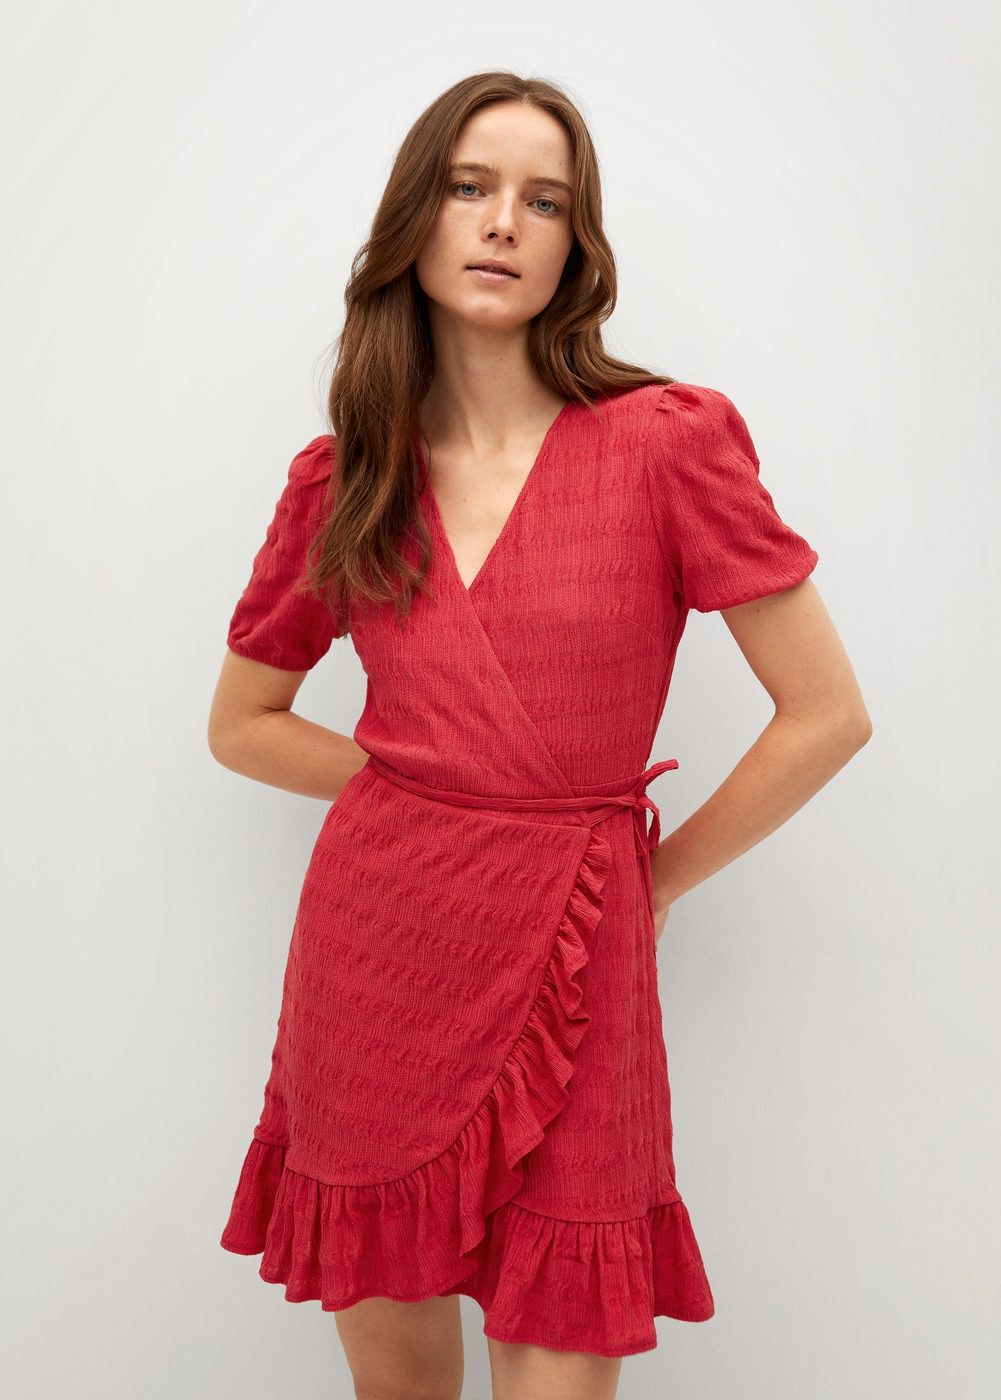 28 Casual Red Dresses Under $100 That I'm Obsessed With - casual red dresses 293971 1624940395421